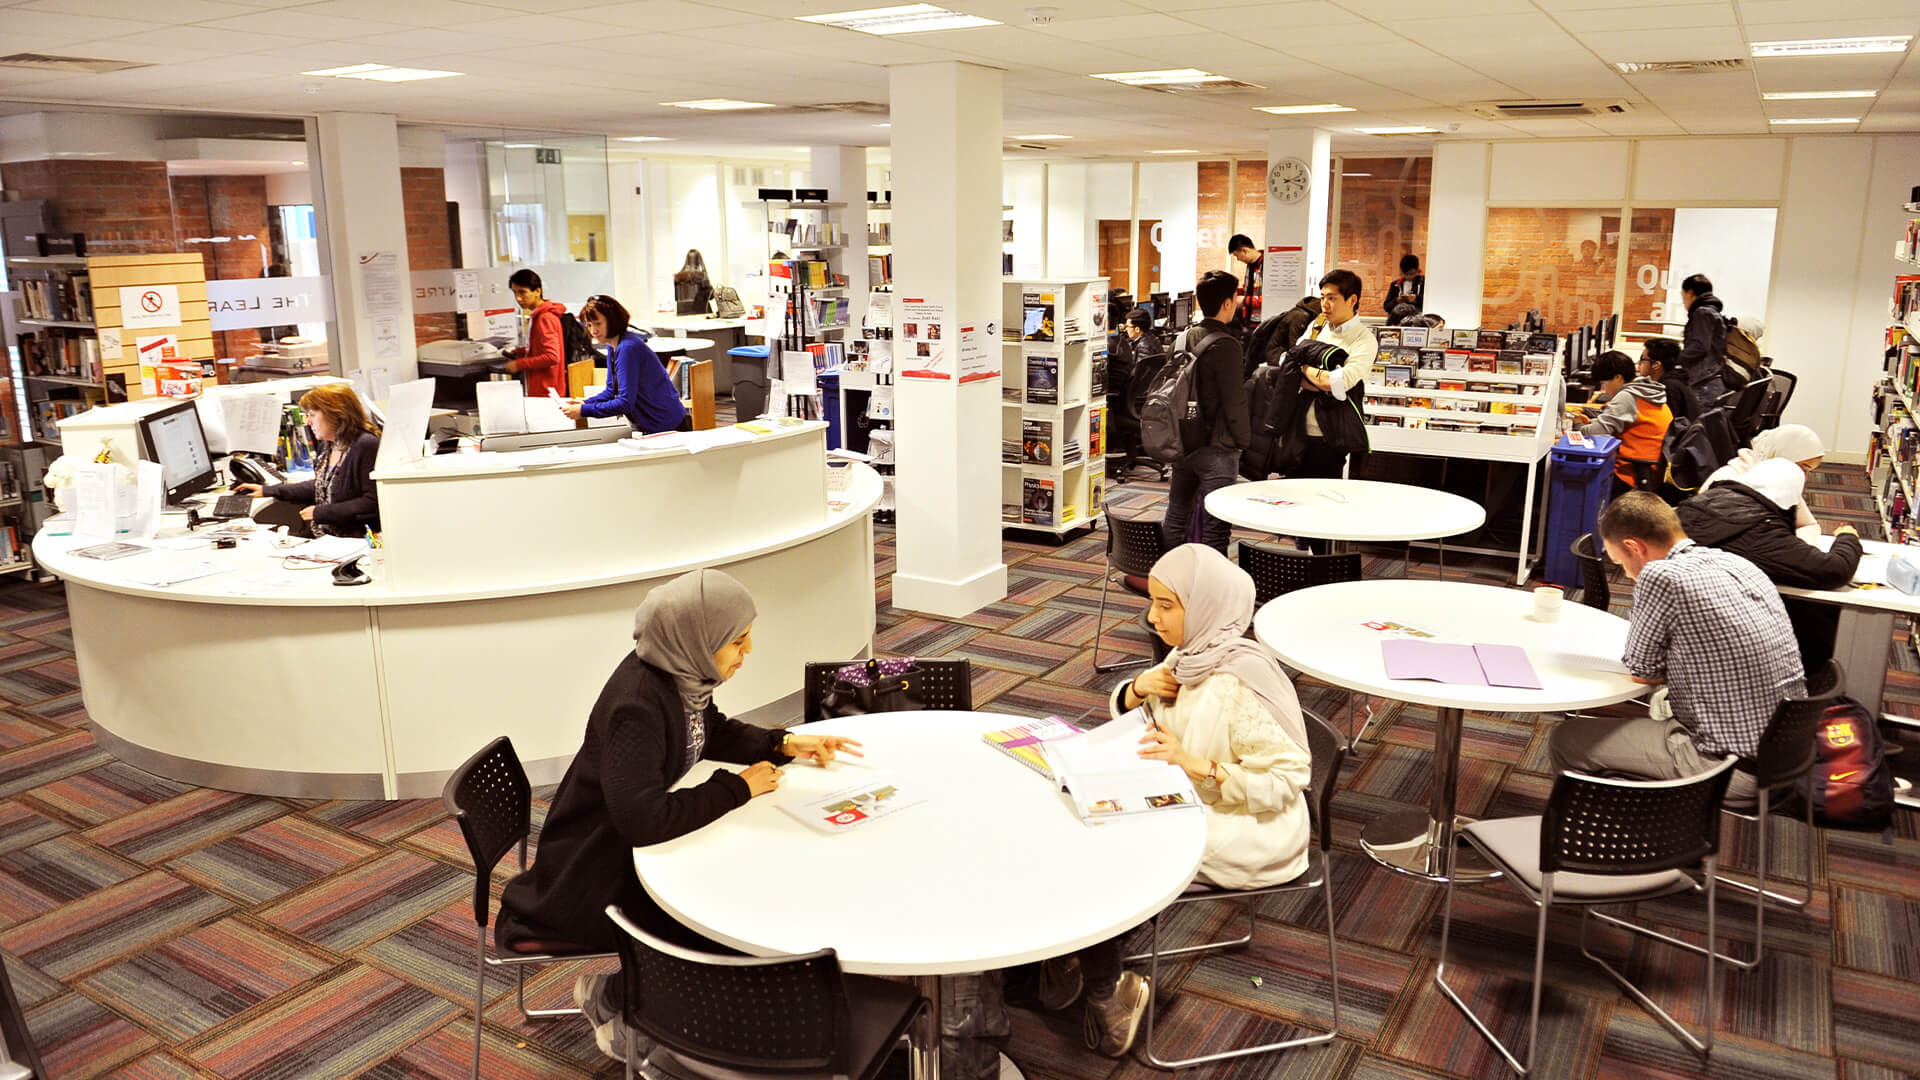 INTO Manchester has comfortable break-out areas for private study and relaxing with friends